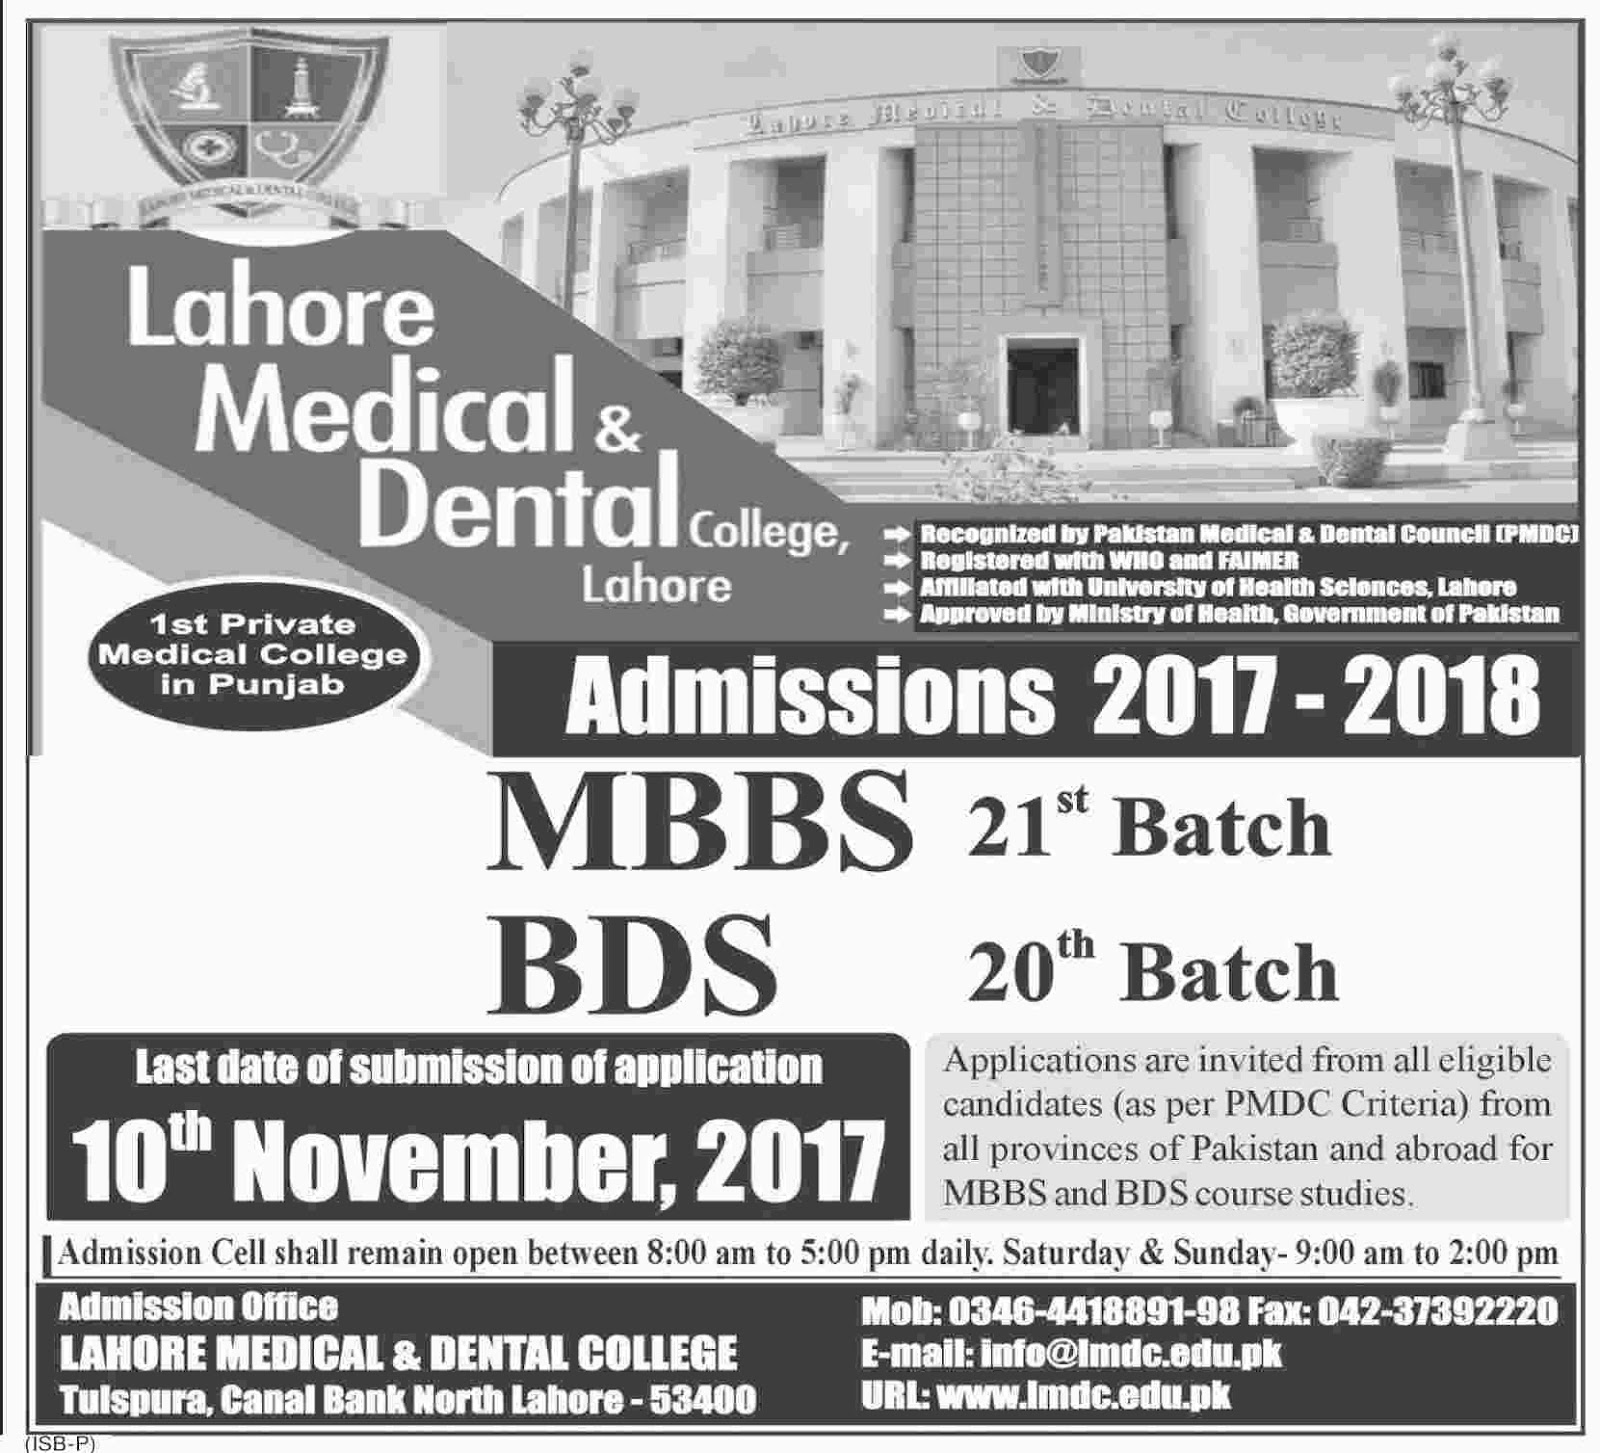 Admissions Open in Lahore Medical and Dental College